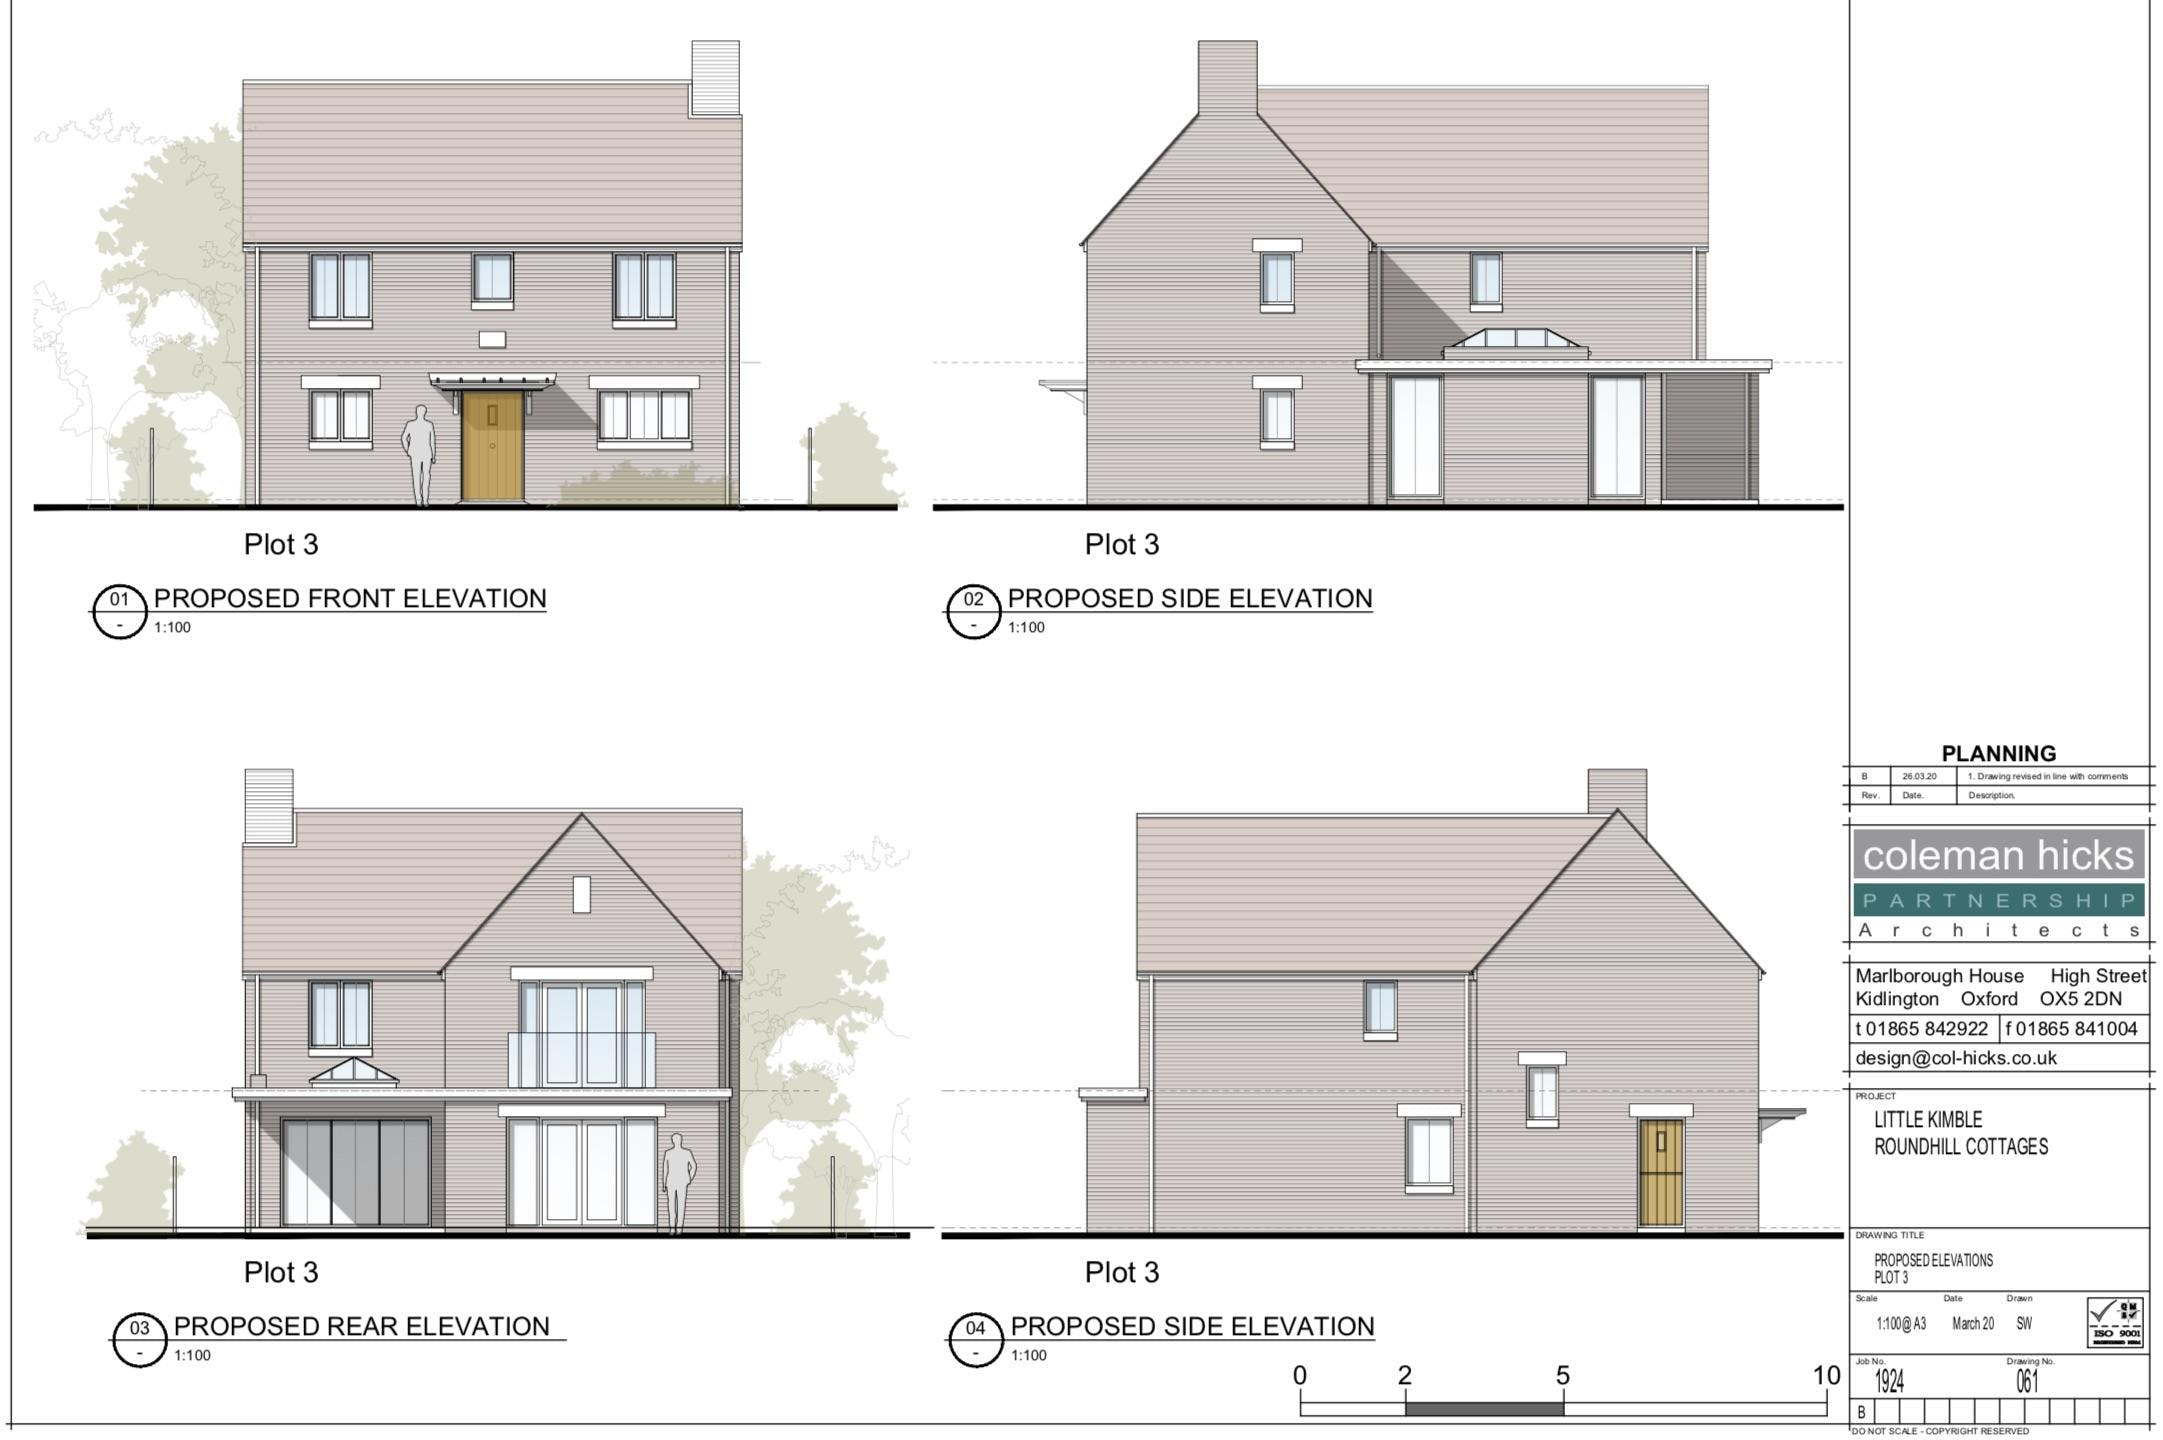 Building Plots, Roundhill Cottages Kimblewick Road, Little Kimble, Residential For Sale - ELEVATIONS.jpg